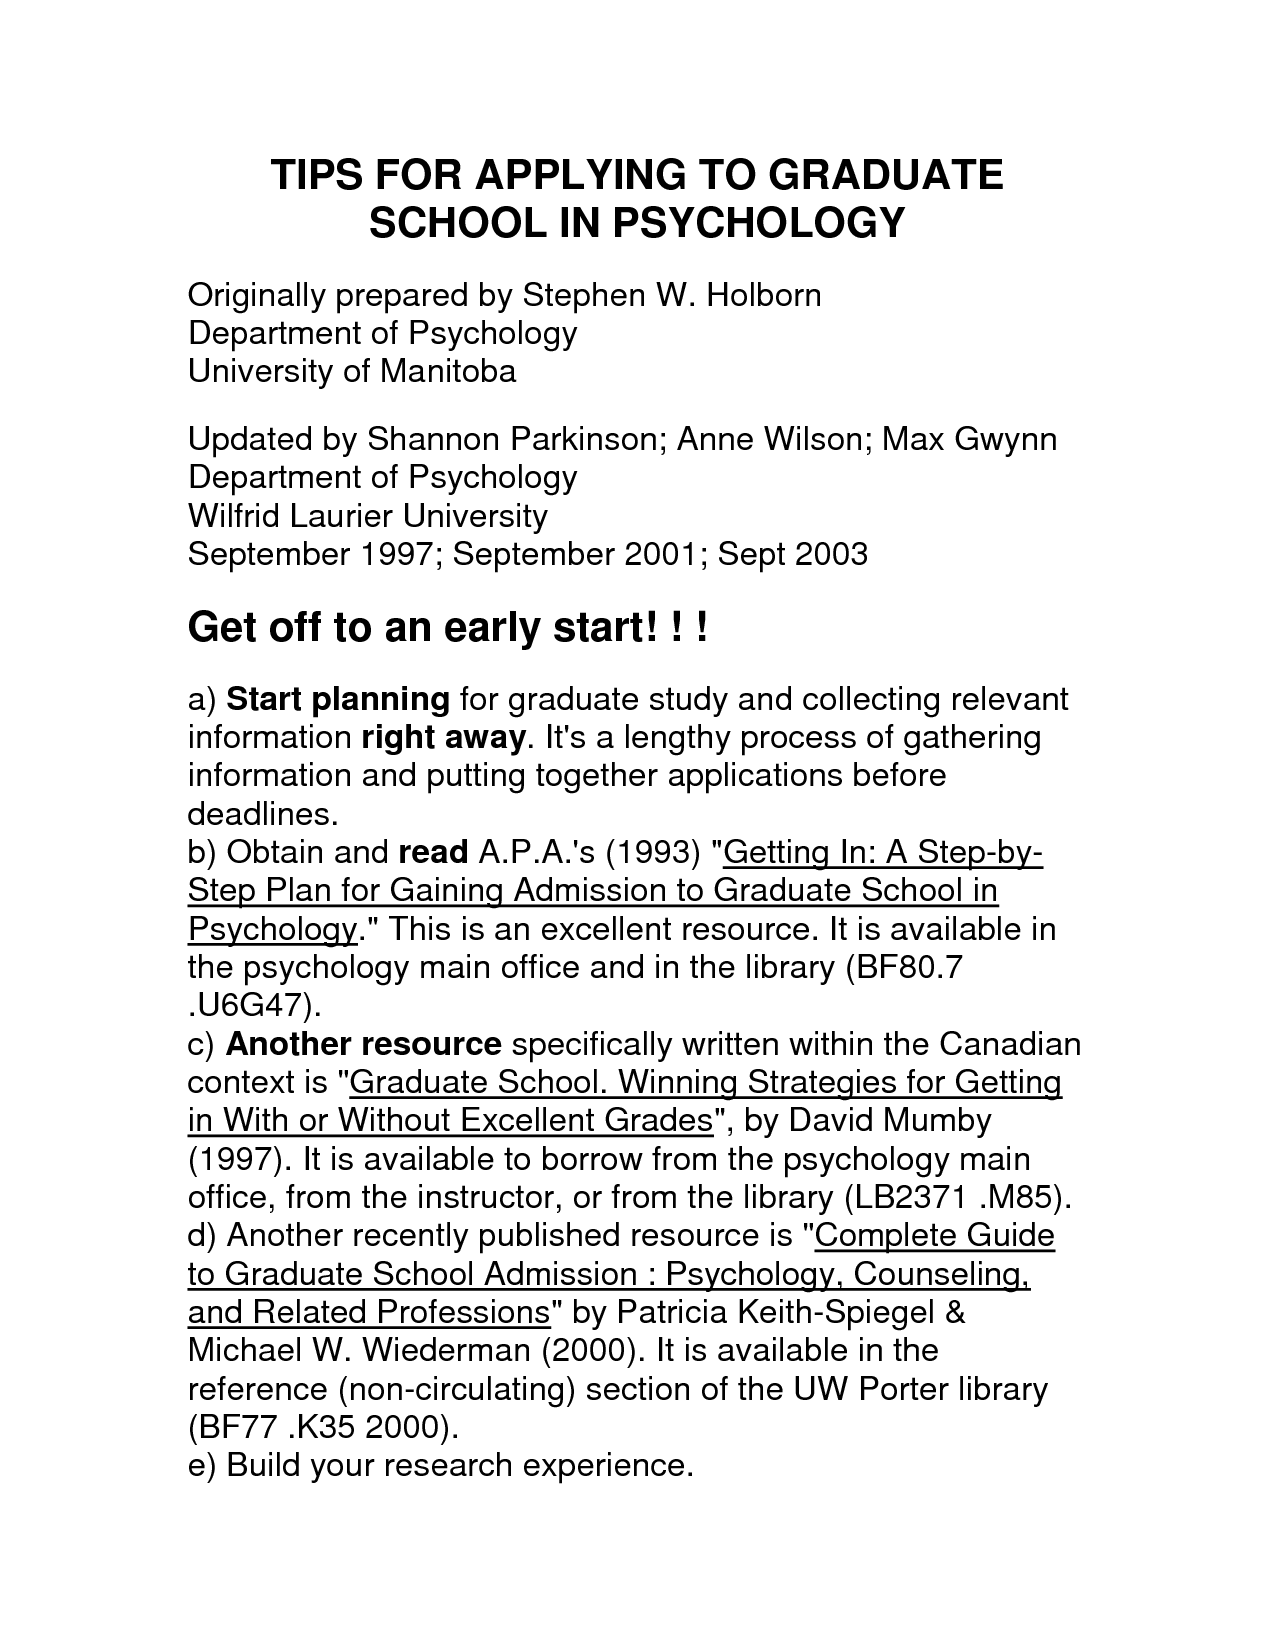 Psychology Graduate School Resume   Http://www.resumecareer.info/psychology  Graduate School Resumes